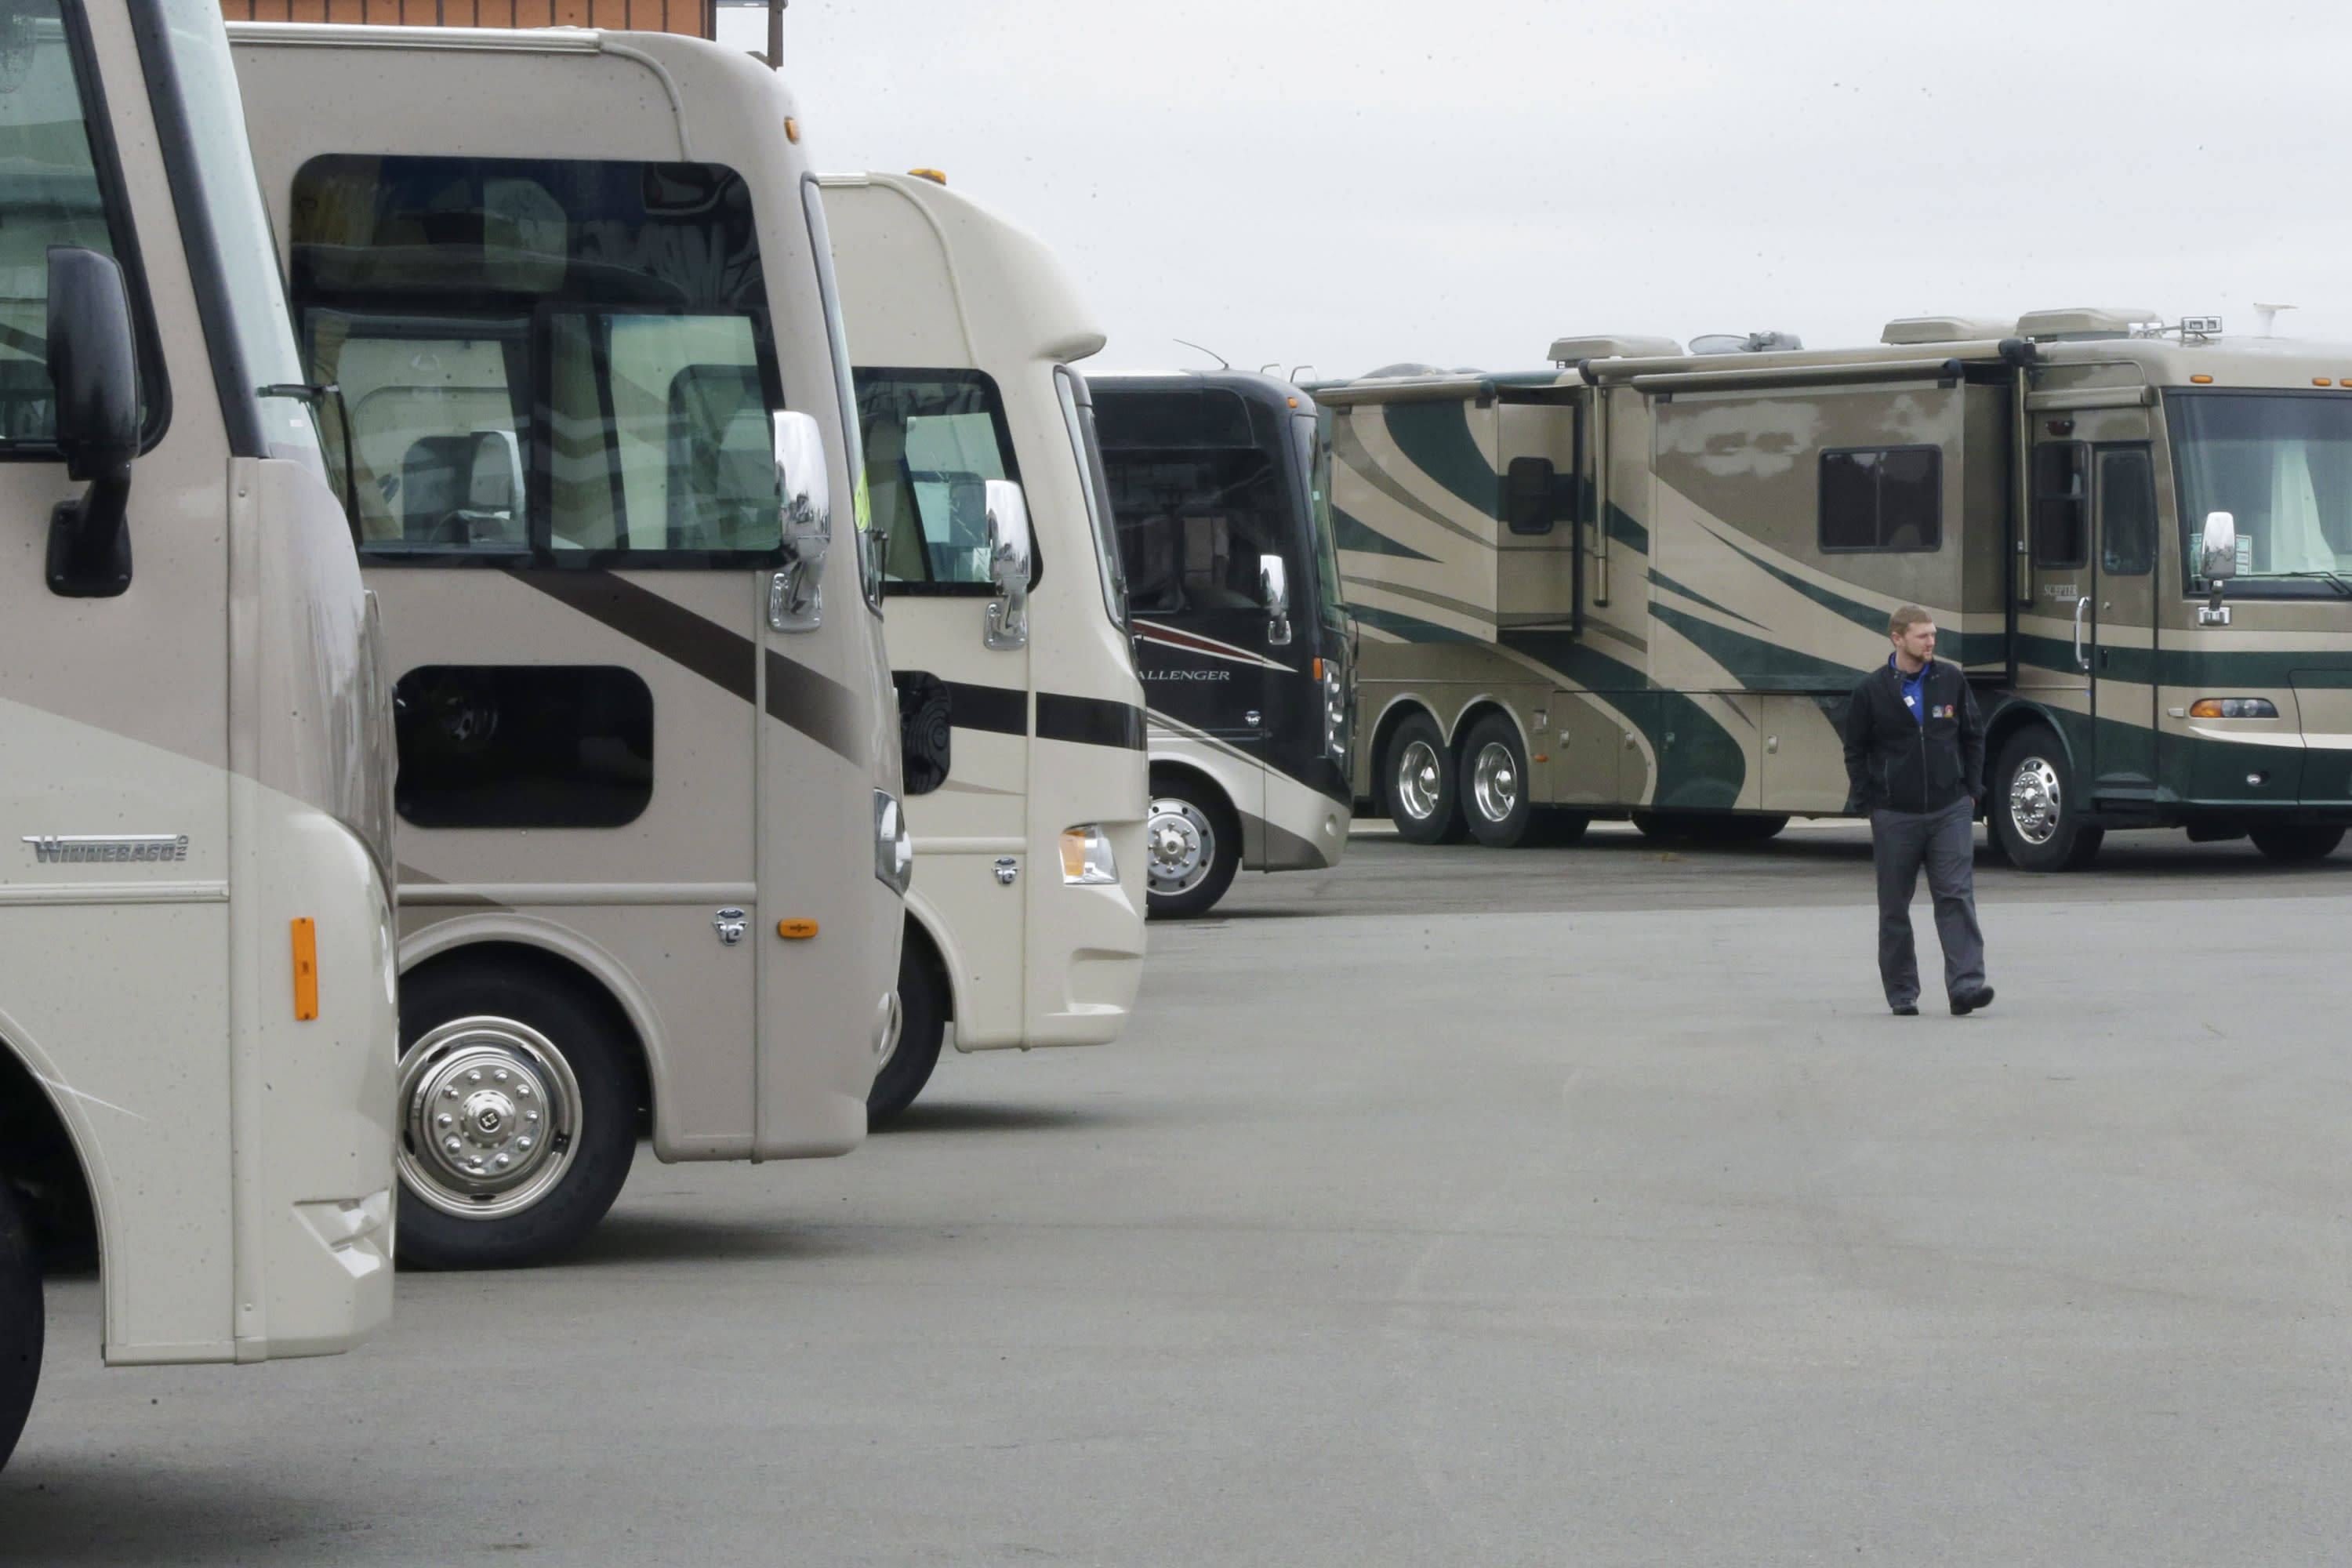 Recession warning: RV sales hit the skids